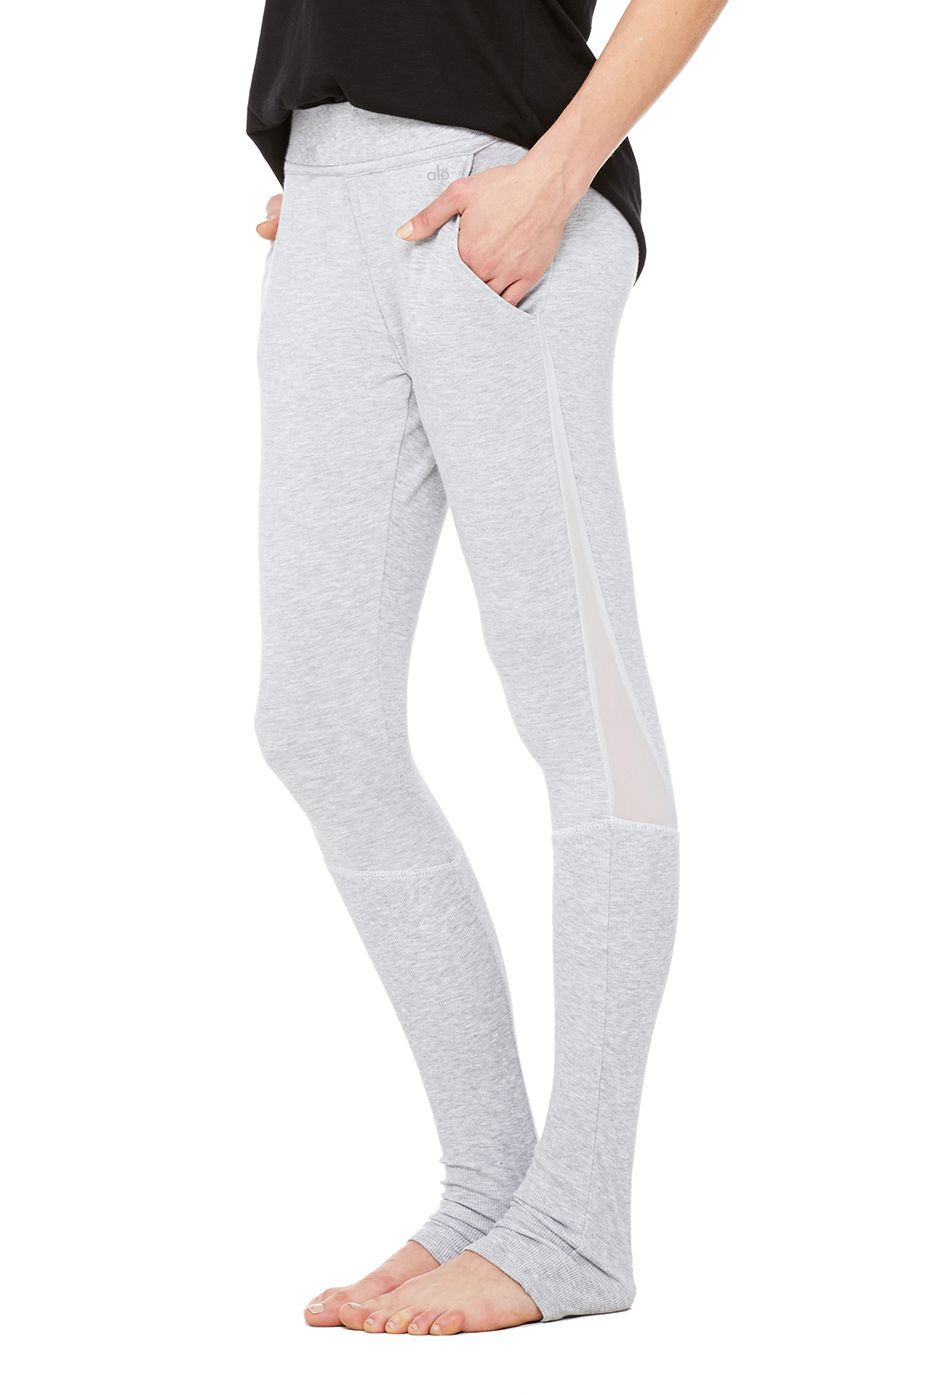 d9e8cf627aa44 This cozy-to-and-from pant is perfect for throwing on over shorts or  leggings— for warmth or coverage. Rib detail at waistband and calf pairs  with micro ...